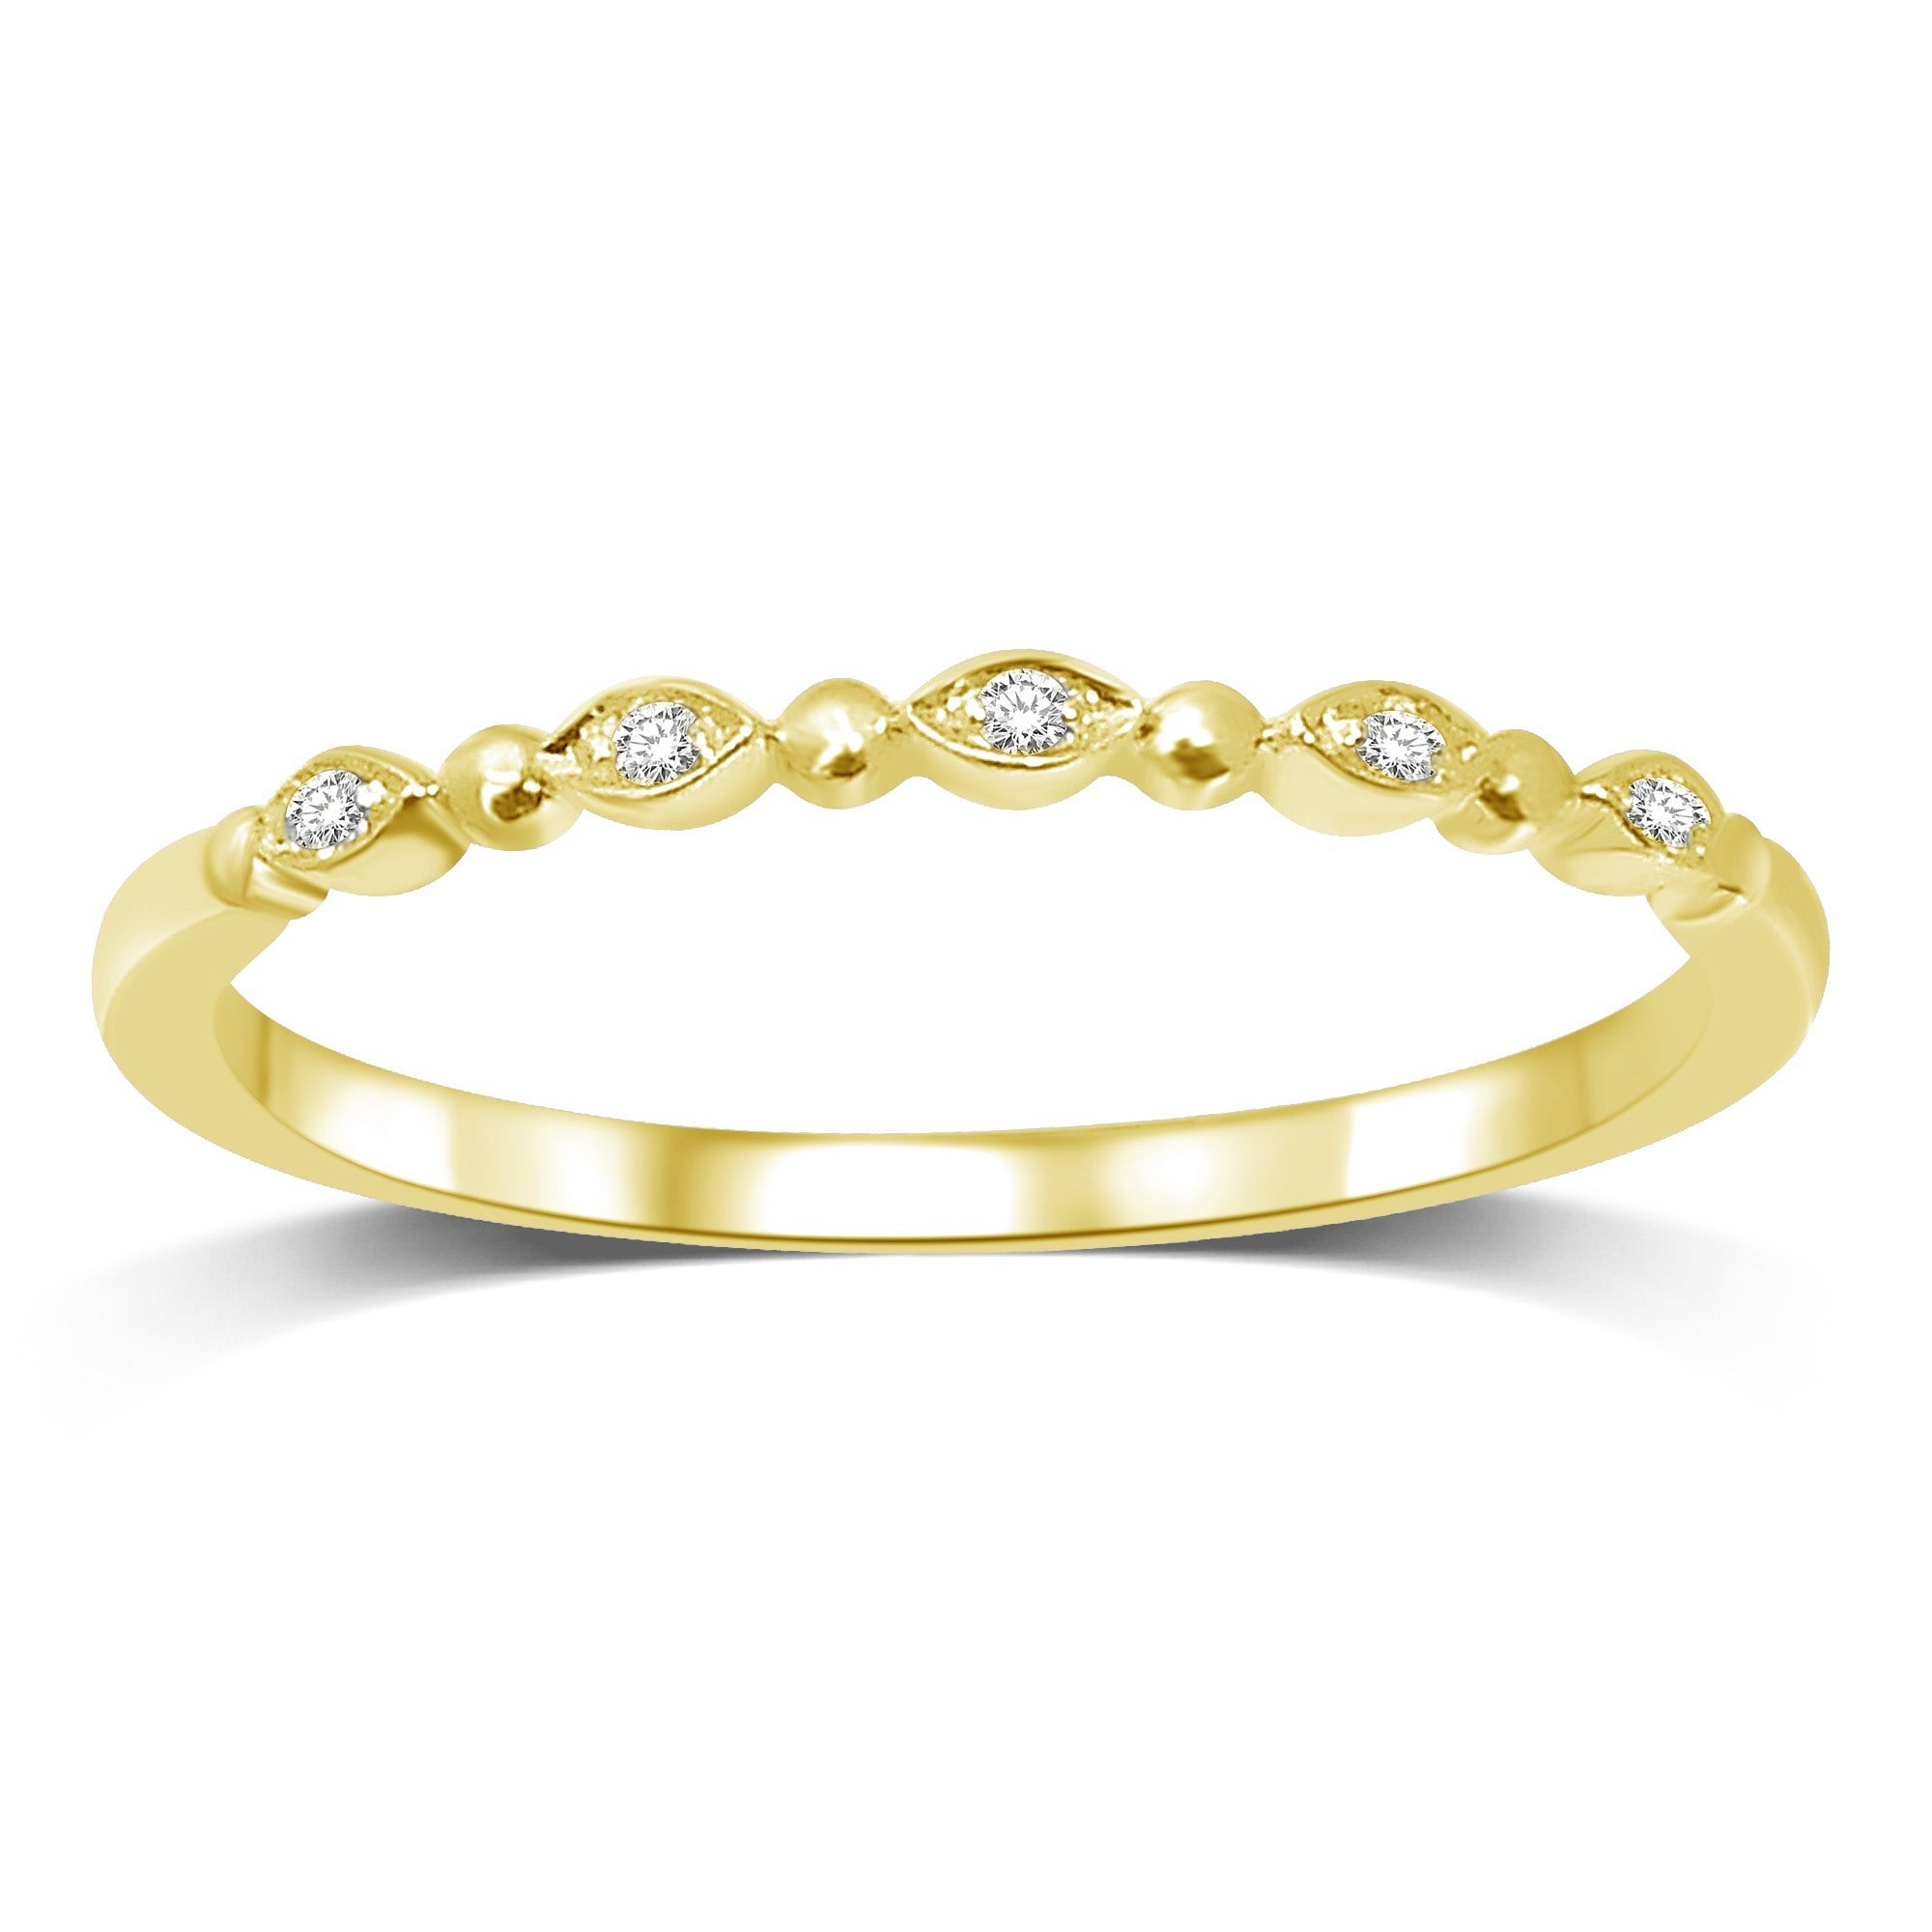 14K Yellow Gold Diamond Accent Wedding Band